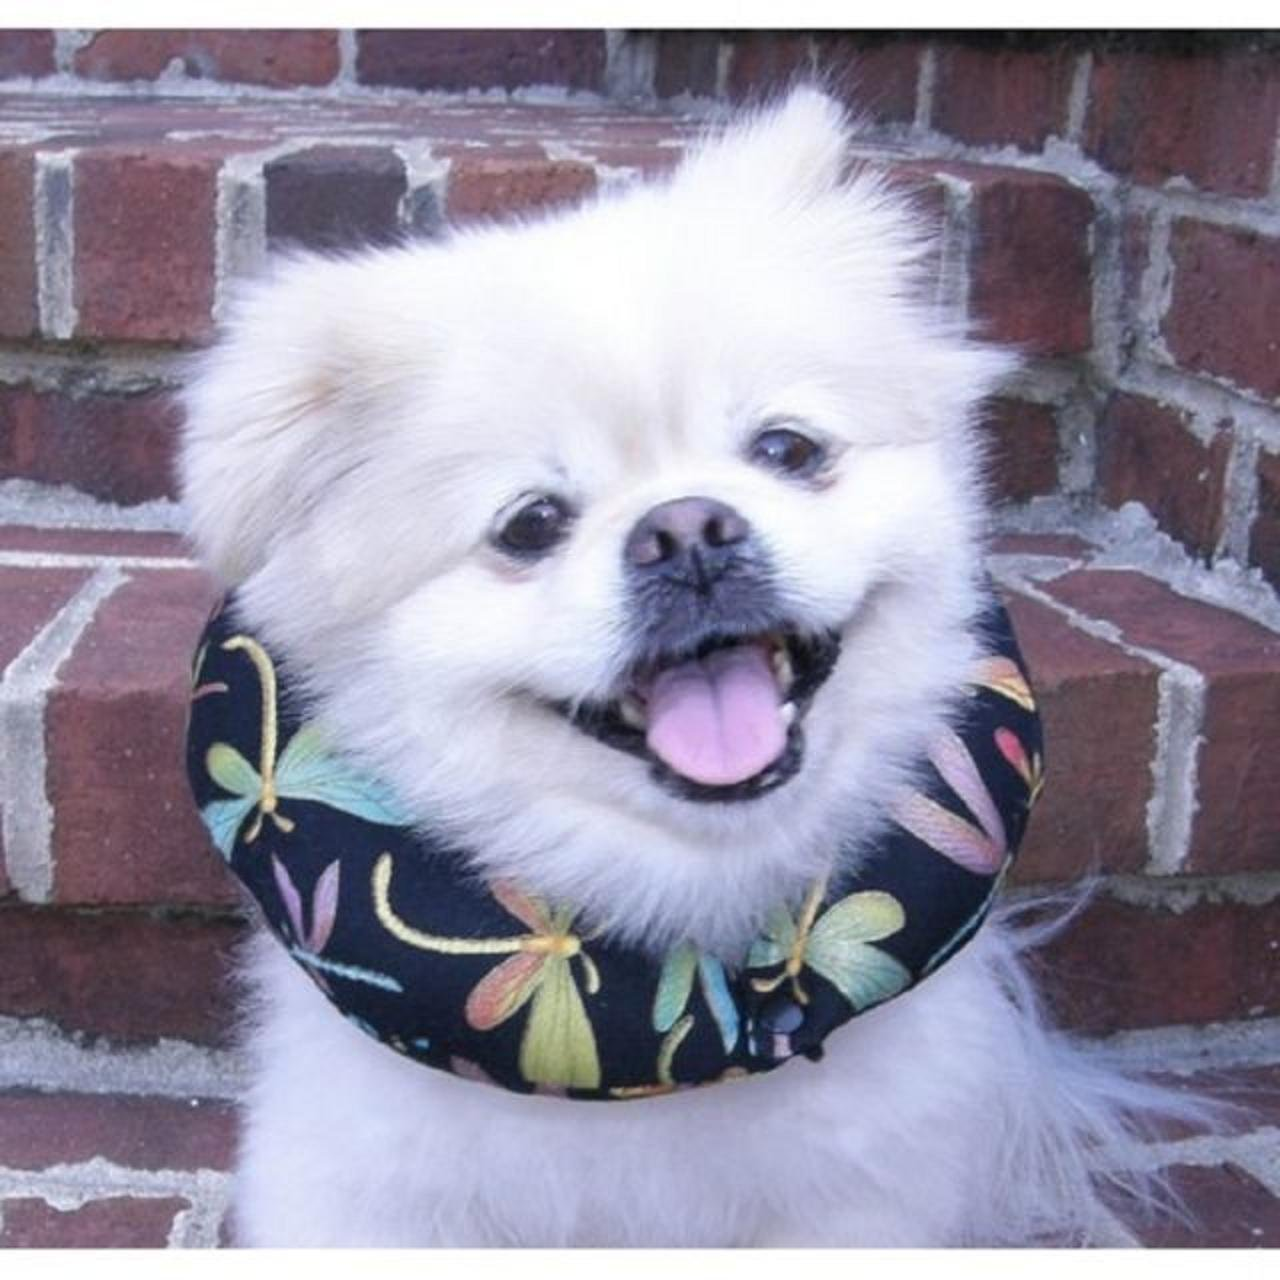 Puppy Bumpers - Keeps Your Tiny Dog From Squeezing Thru Small Spaces - Small Black Dragonfly